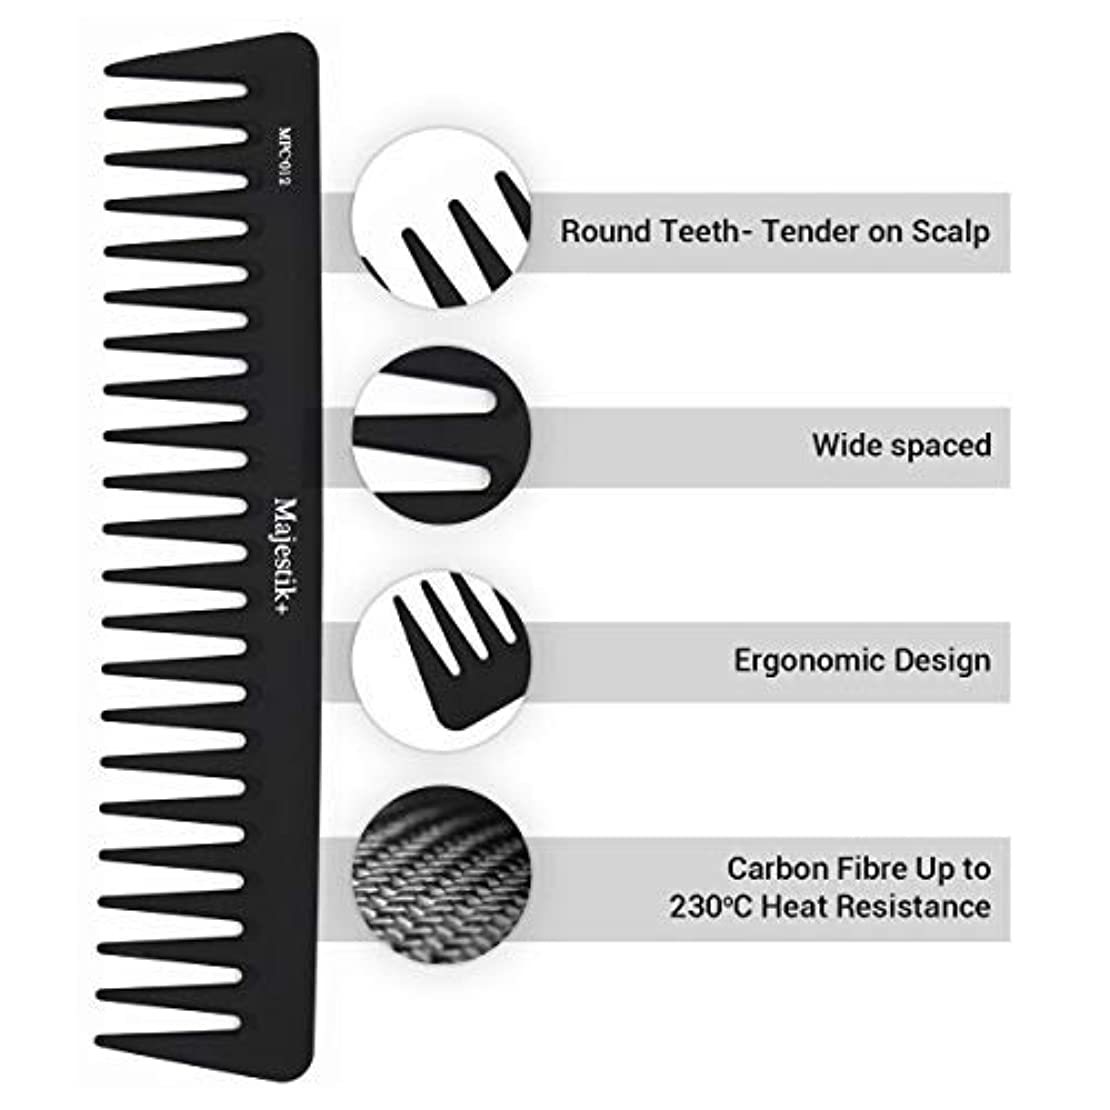 Wide Tooth Comb- a Professional Carbon Fibre Hair Comb by Majestik+, Anti-Static, Strength & Durability, in Black...